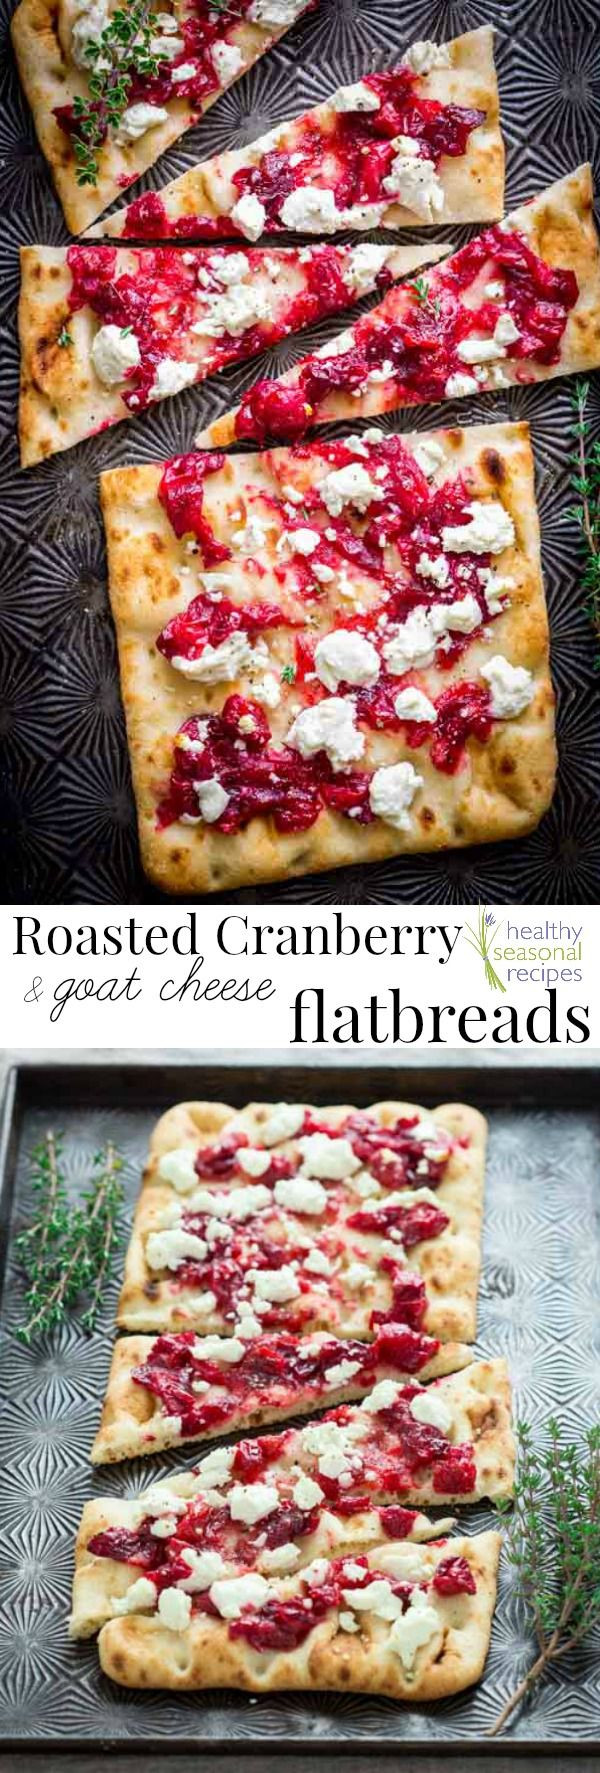 This roasted cranberry and goat cheese flatbread is an easy holiday party appetizer #spon      [..]